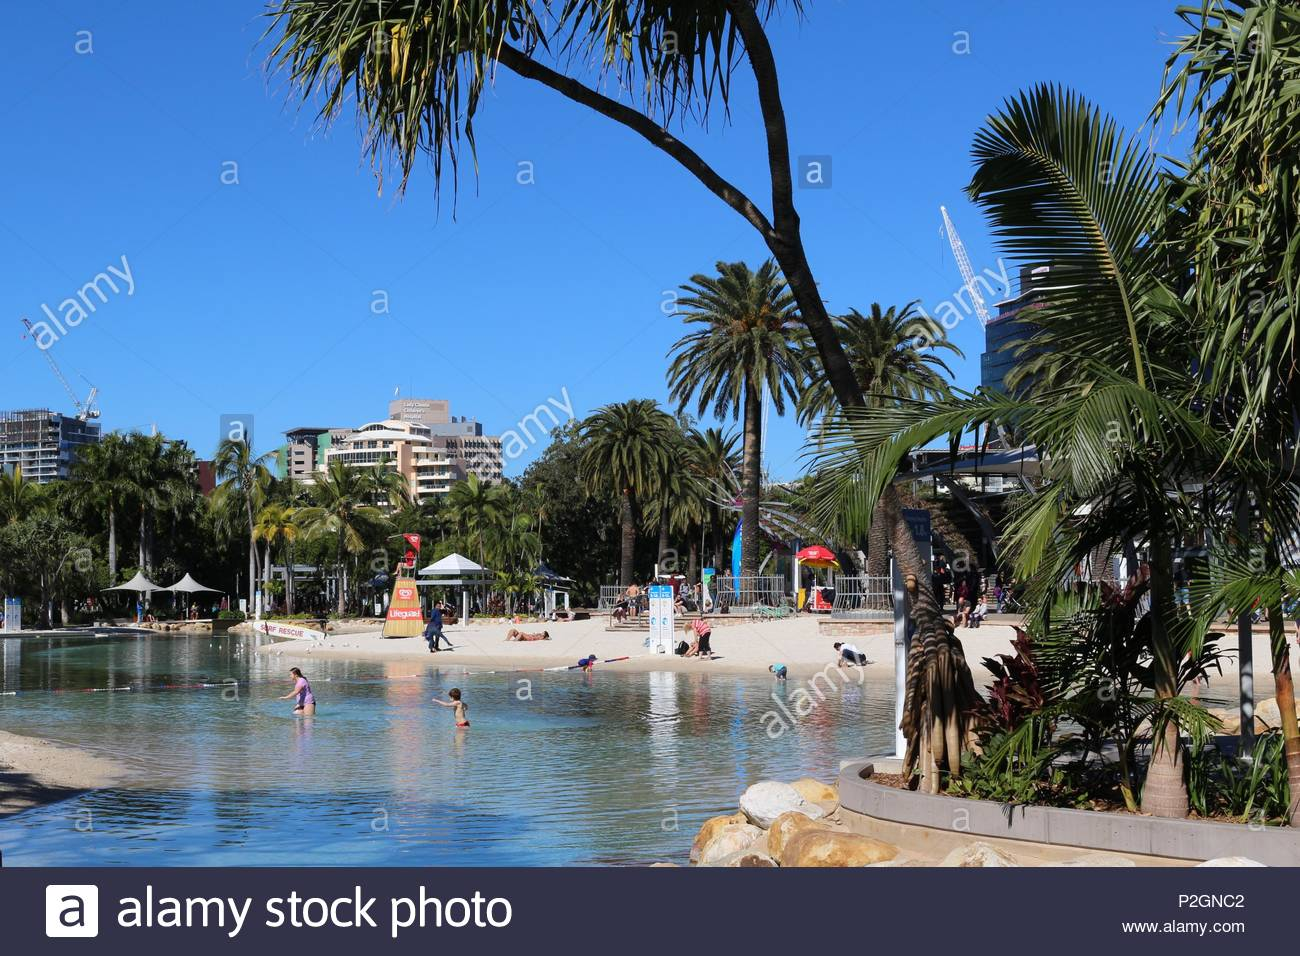 Brisbane, Queensland / Australia - Jul 3 2016: Lovely beach created in the middle of the city - Stock Image